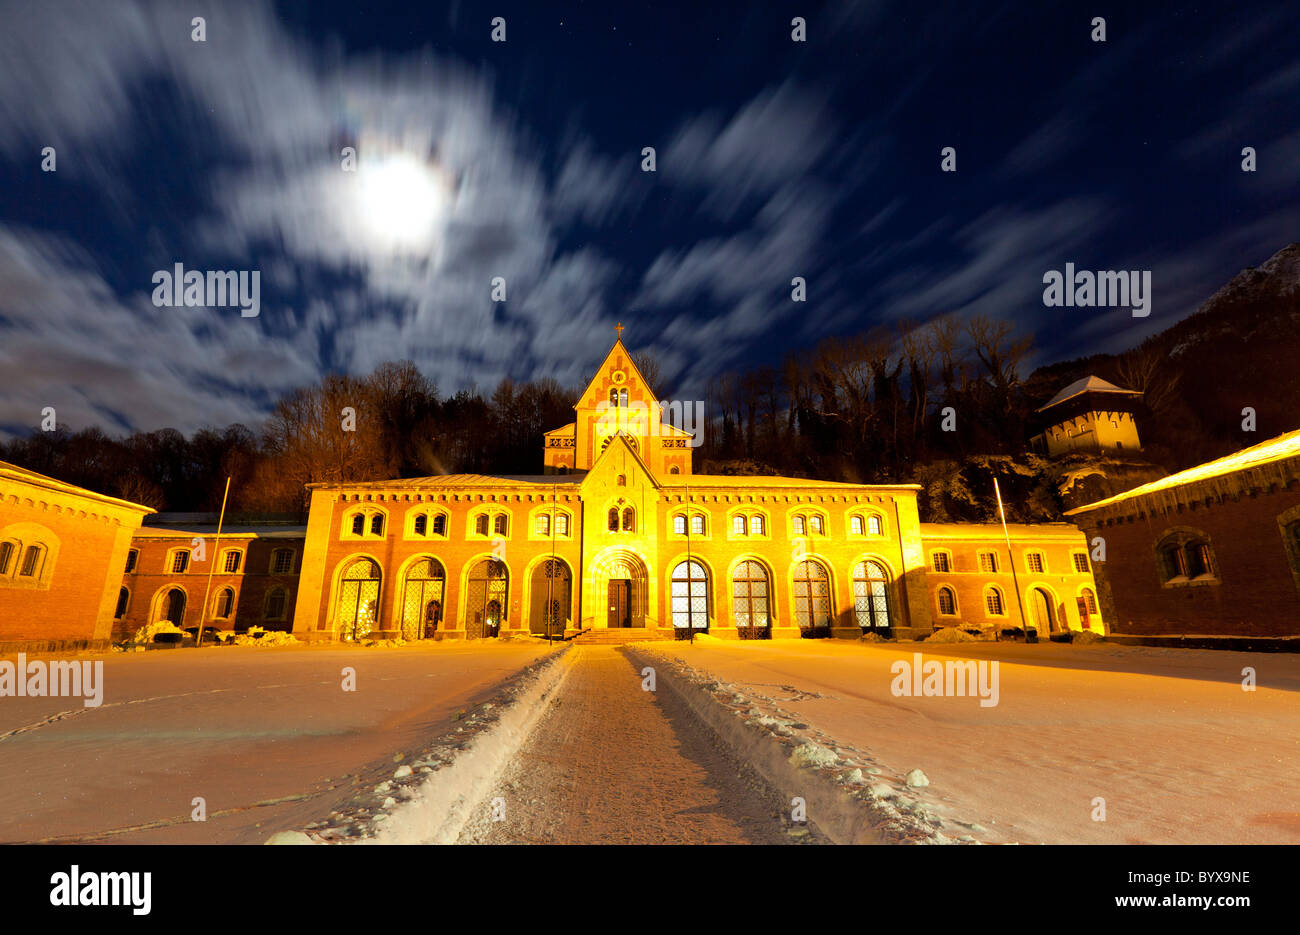 Old Salt Works (Alte Saline) at night. In the centre the main pumping hall, in the background the spring works chapel. - Stock Image